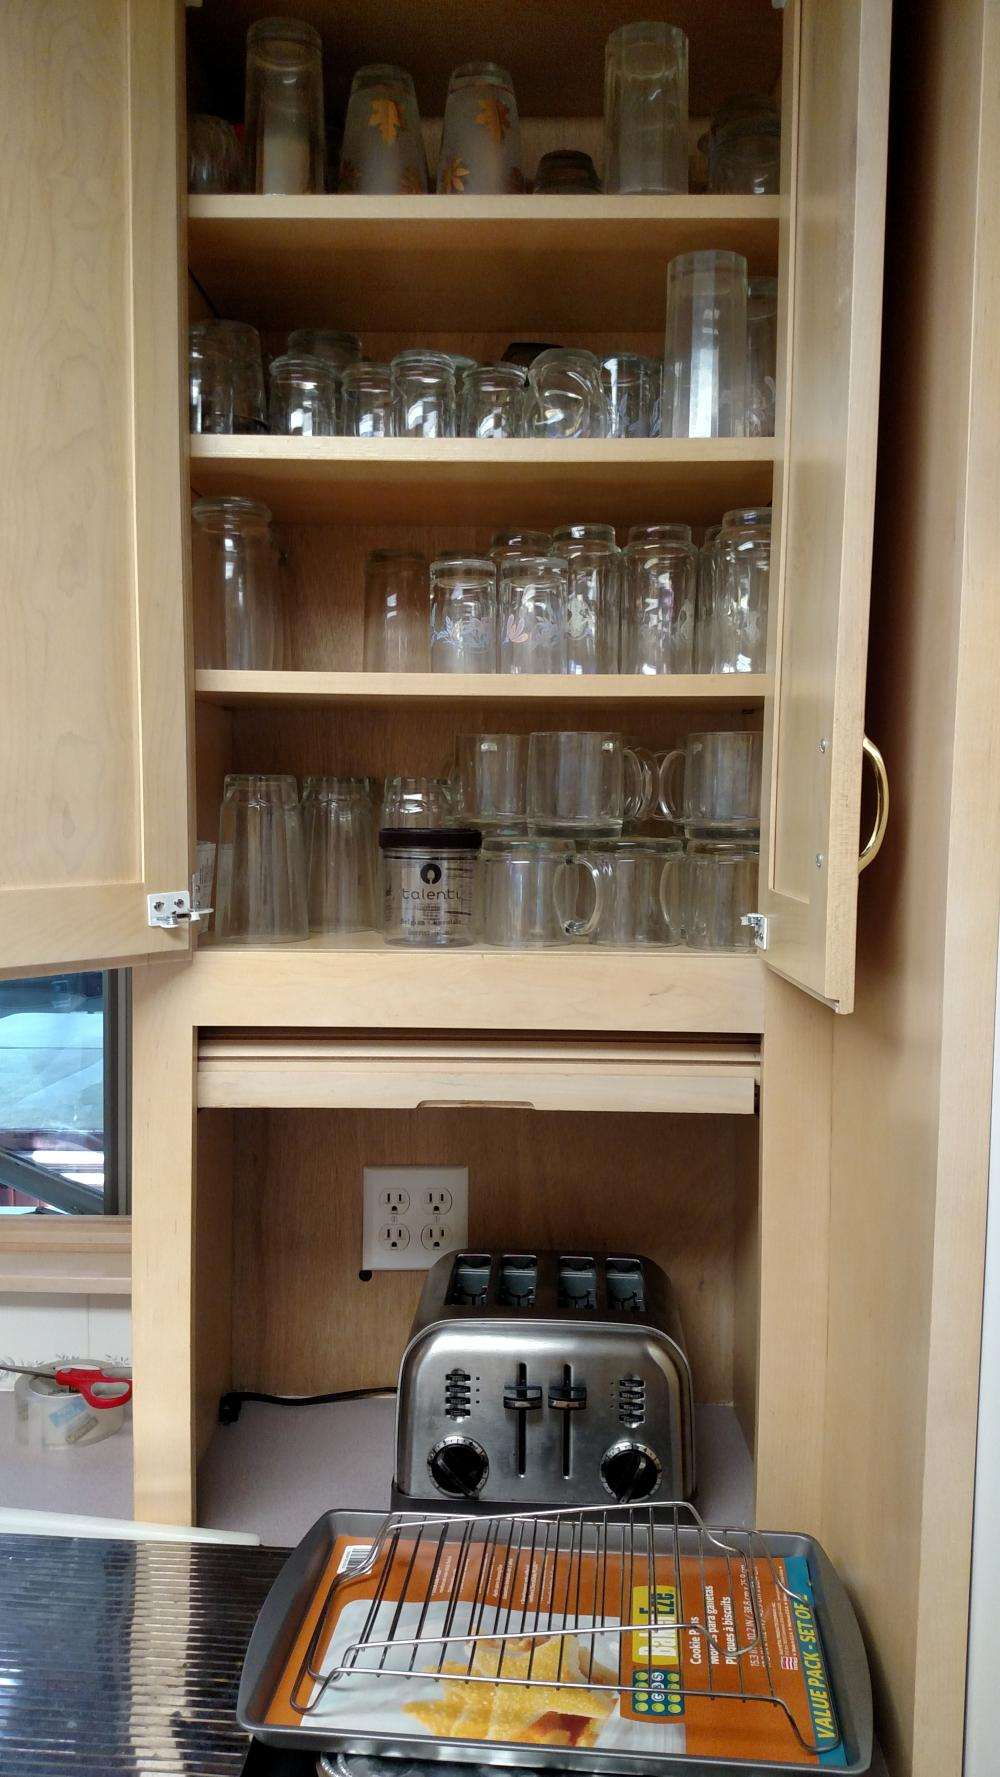 4 slice toaster, glasses, baking trays, white cutting board, coffee cups, Juiceman juicer